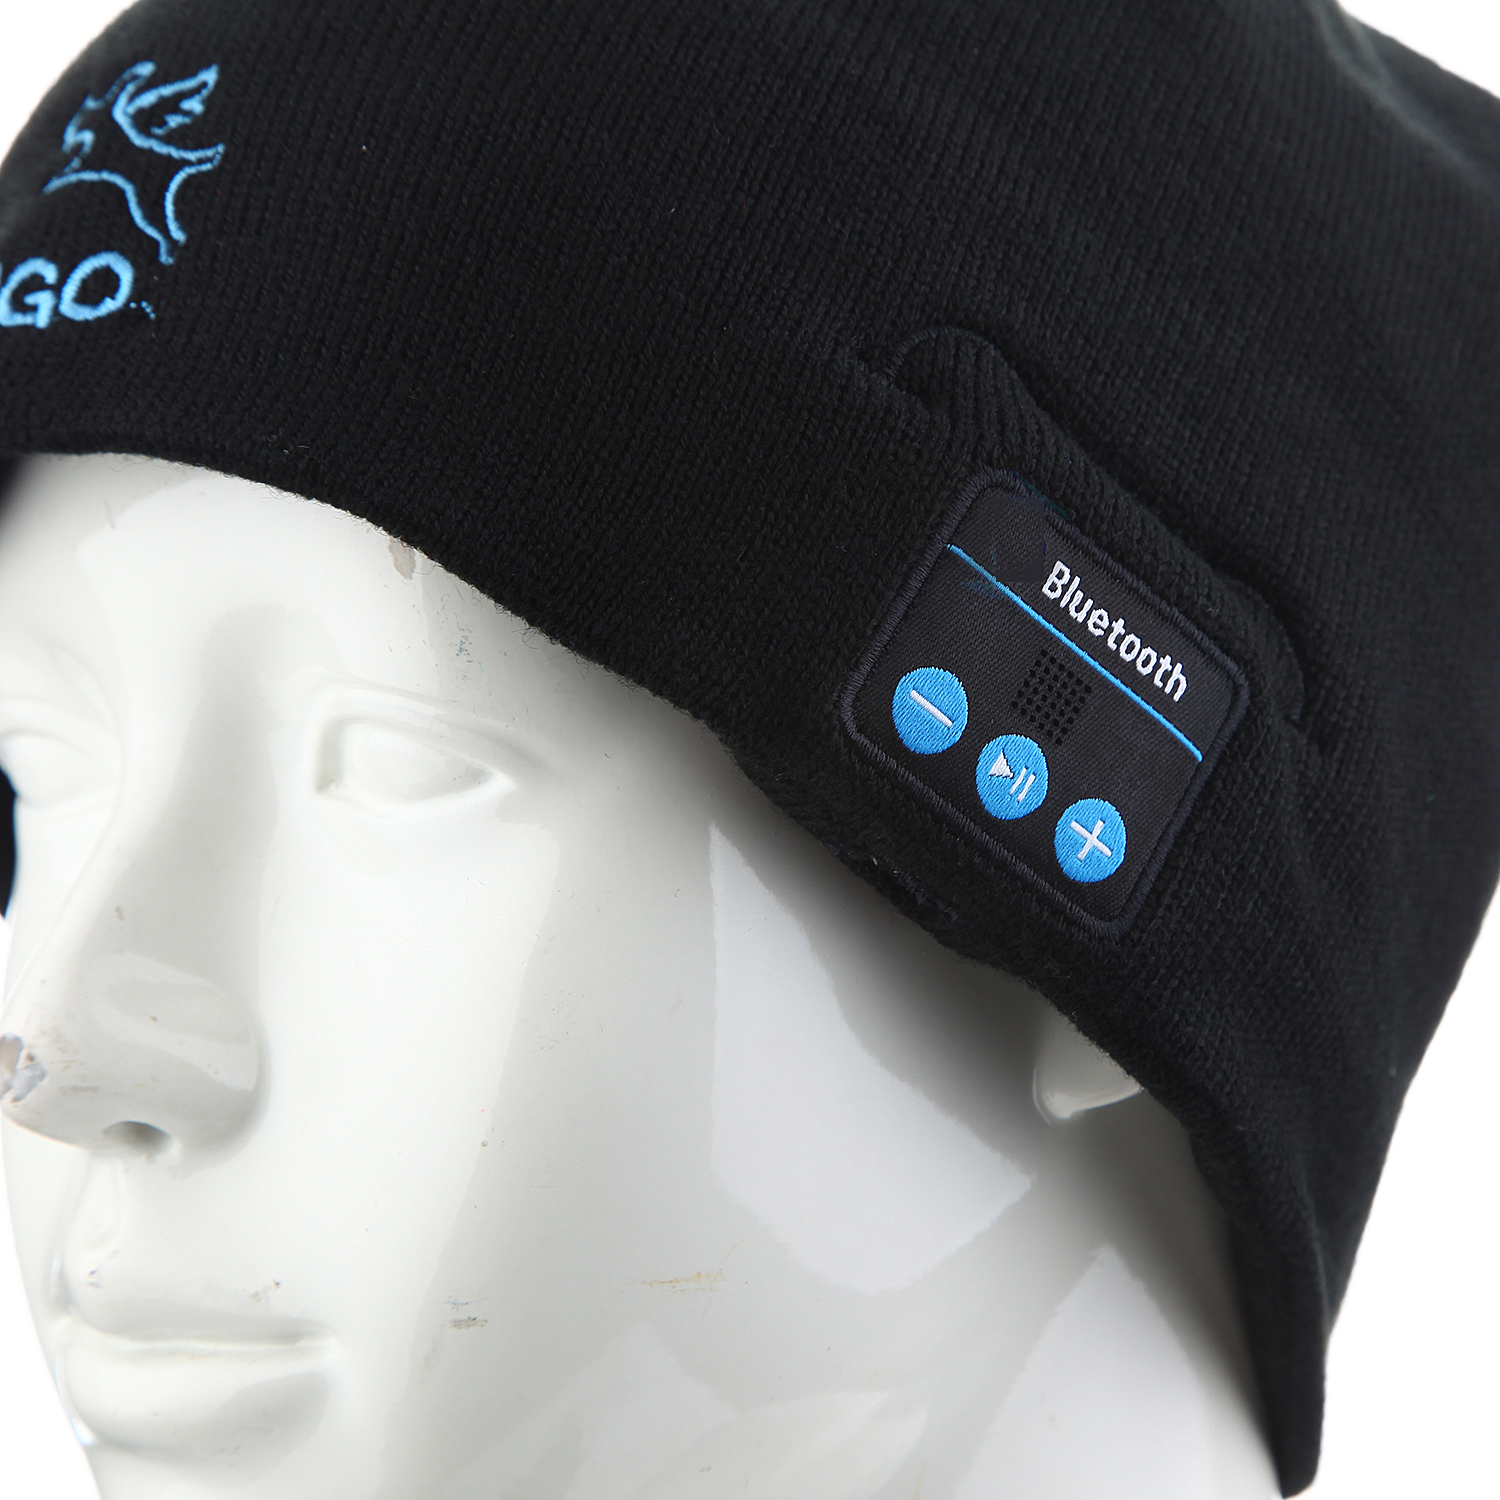 FINGO Warm Beanie Hat Wireless Bluetooth Smart Cap Headphone Speaker with Mic Black